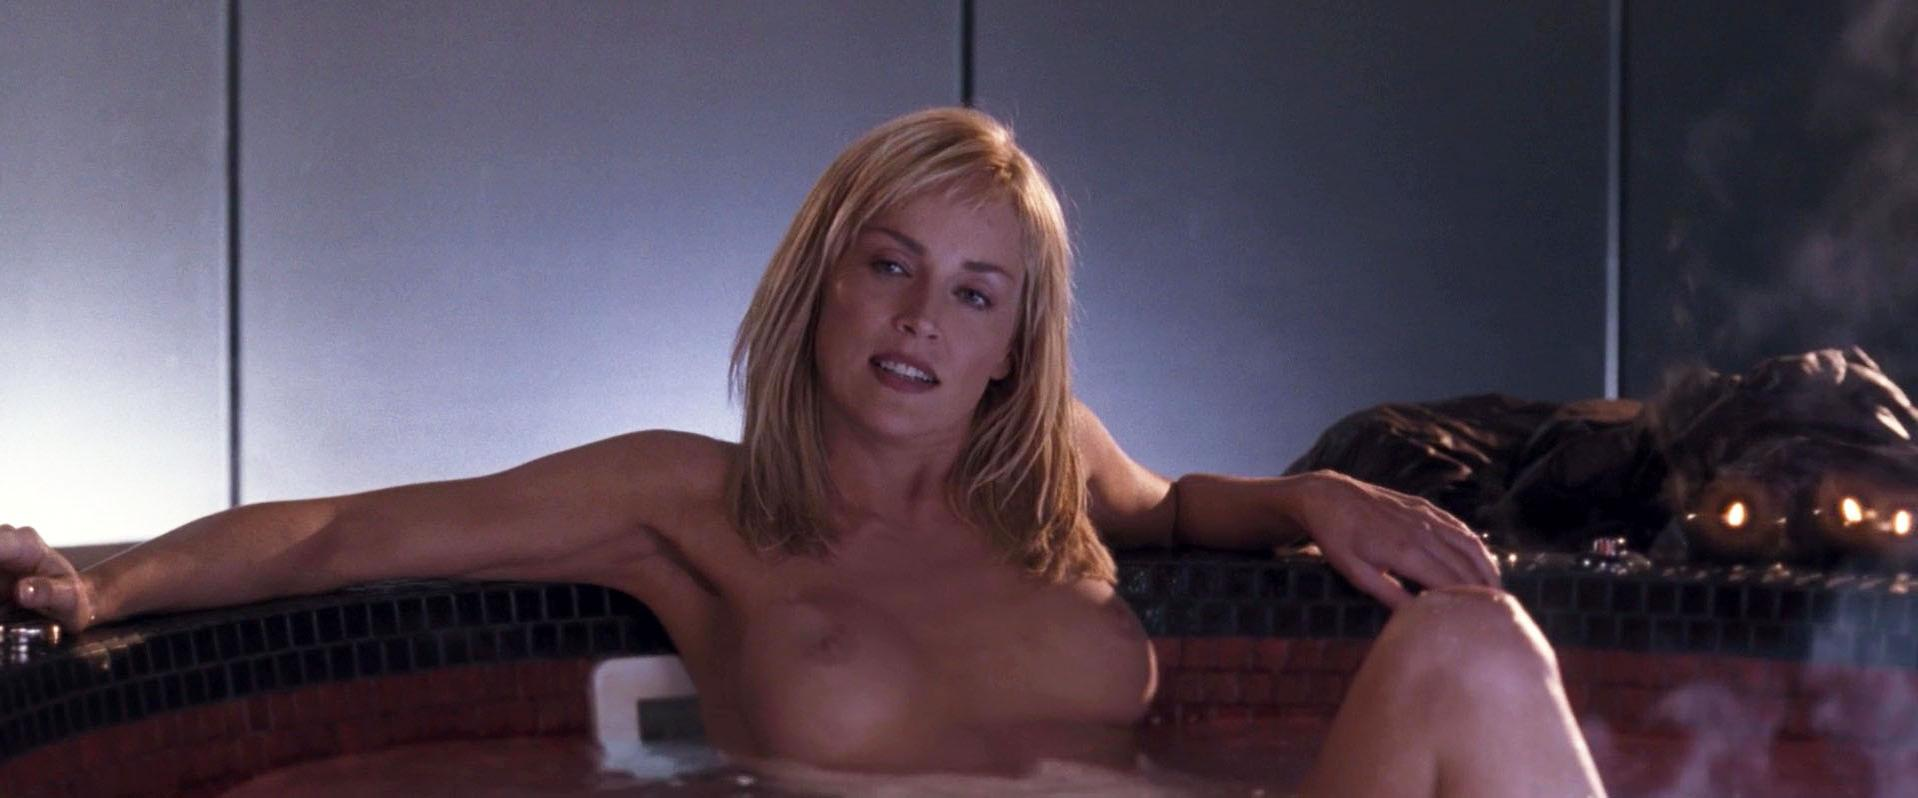 free nude photos of sharon stone